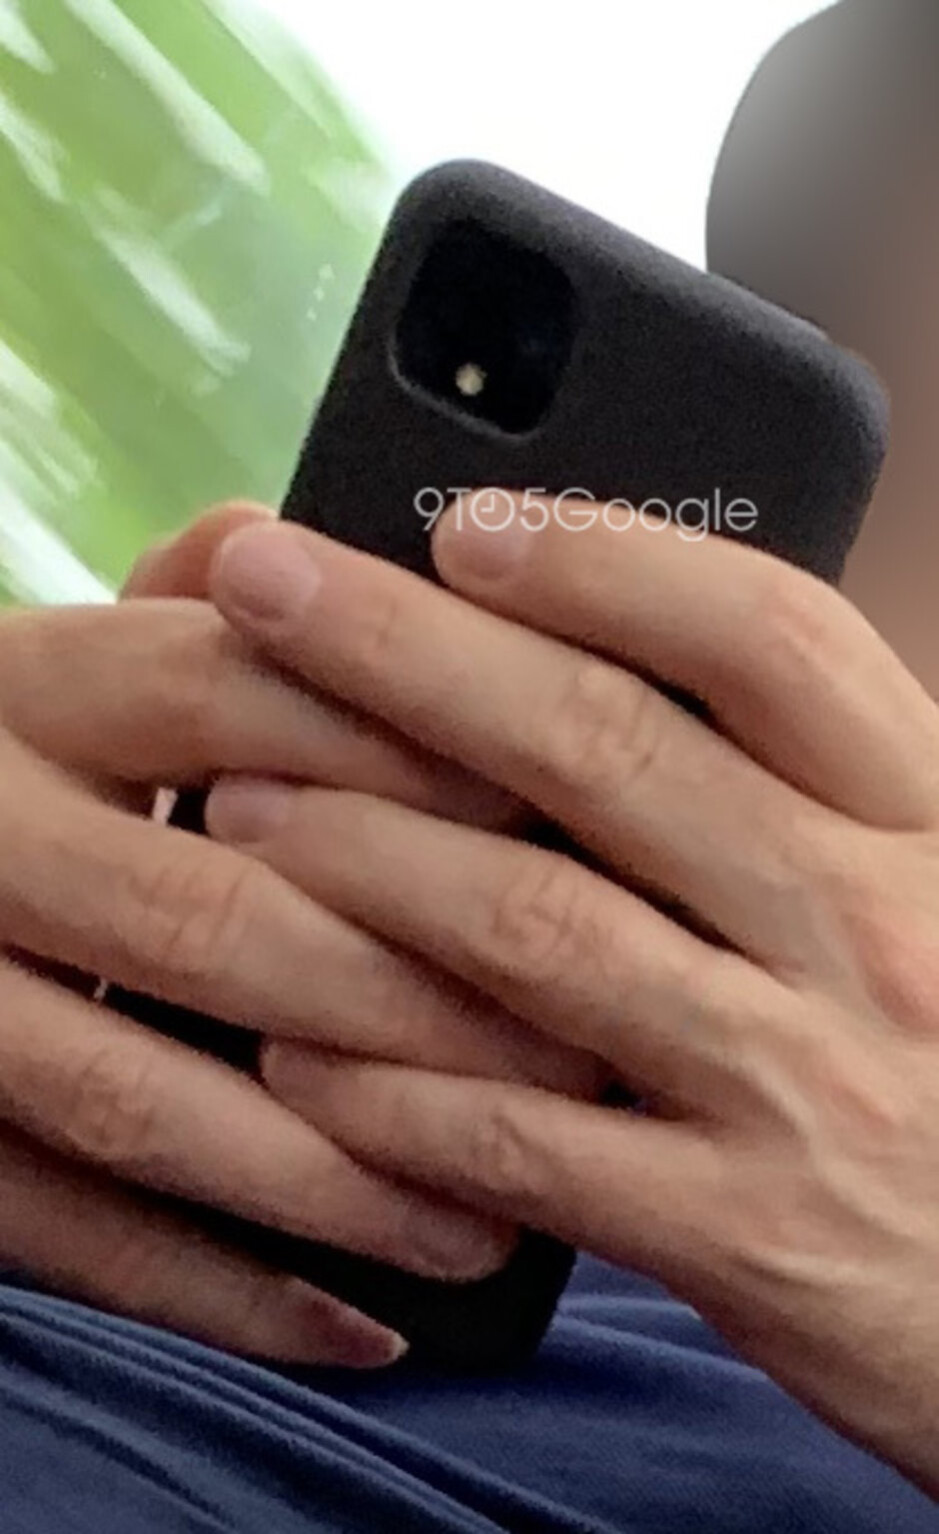 Forget renders – real Google Pixel 4 spotted in the wild